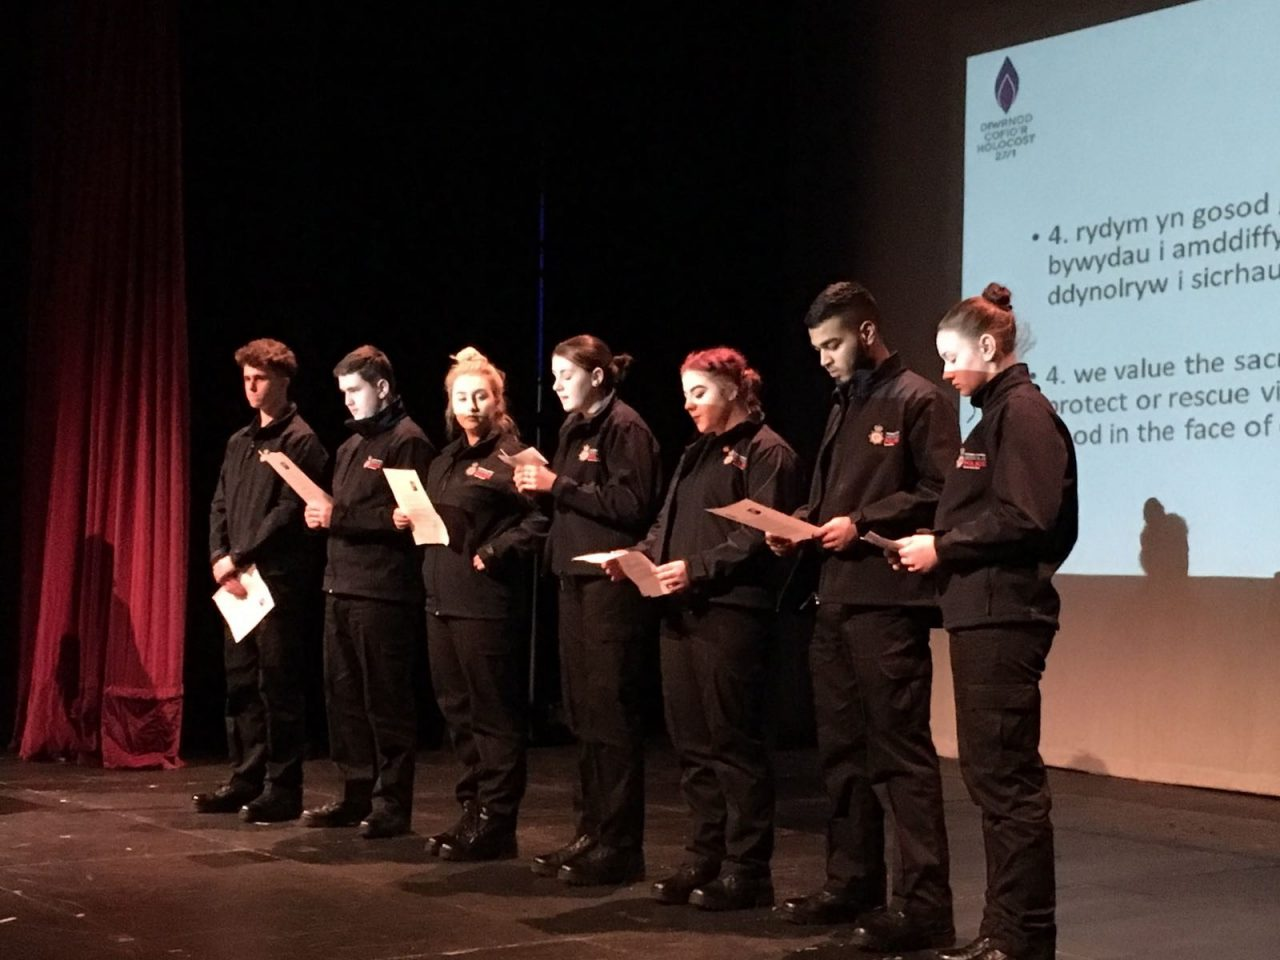 Police youth volunteers from South Wales Police sing and perform a song at their event to mark Holocaust Memorial Day